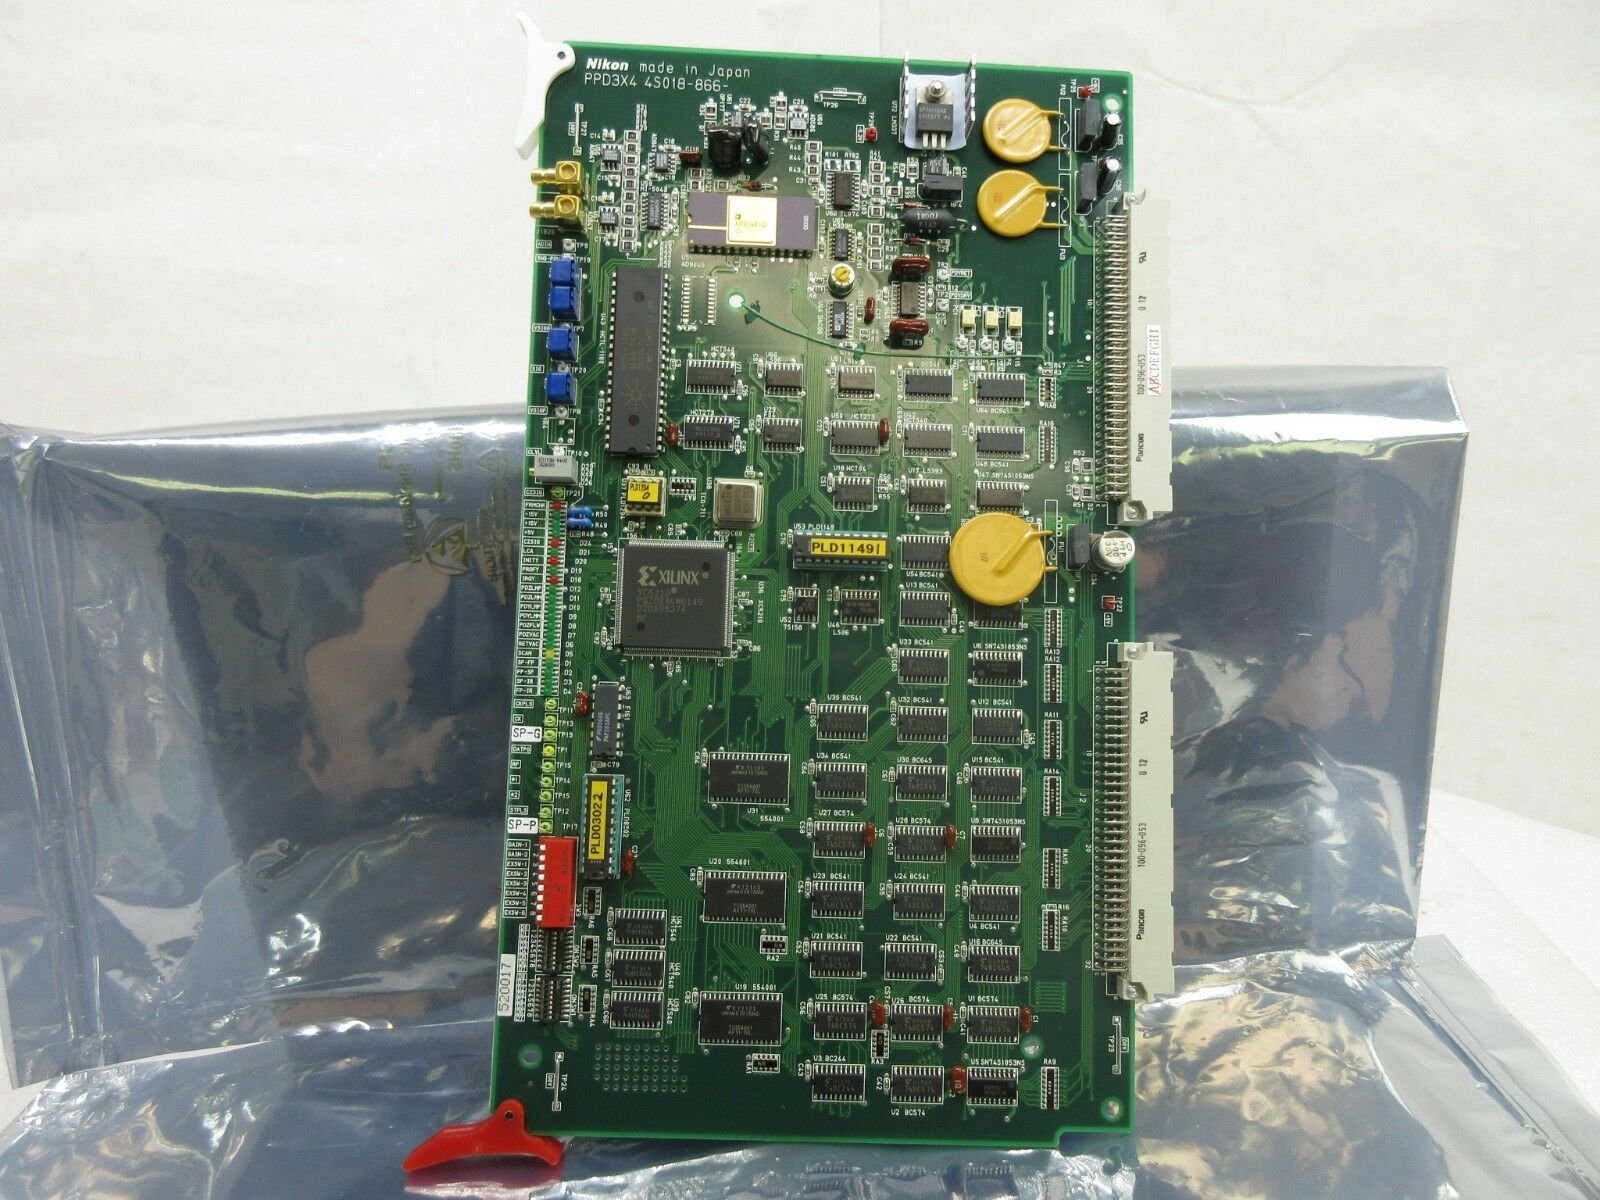 Nikon 4S018-866 Processor Board PCB Card PPD3X4 Used Working